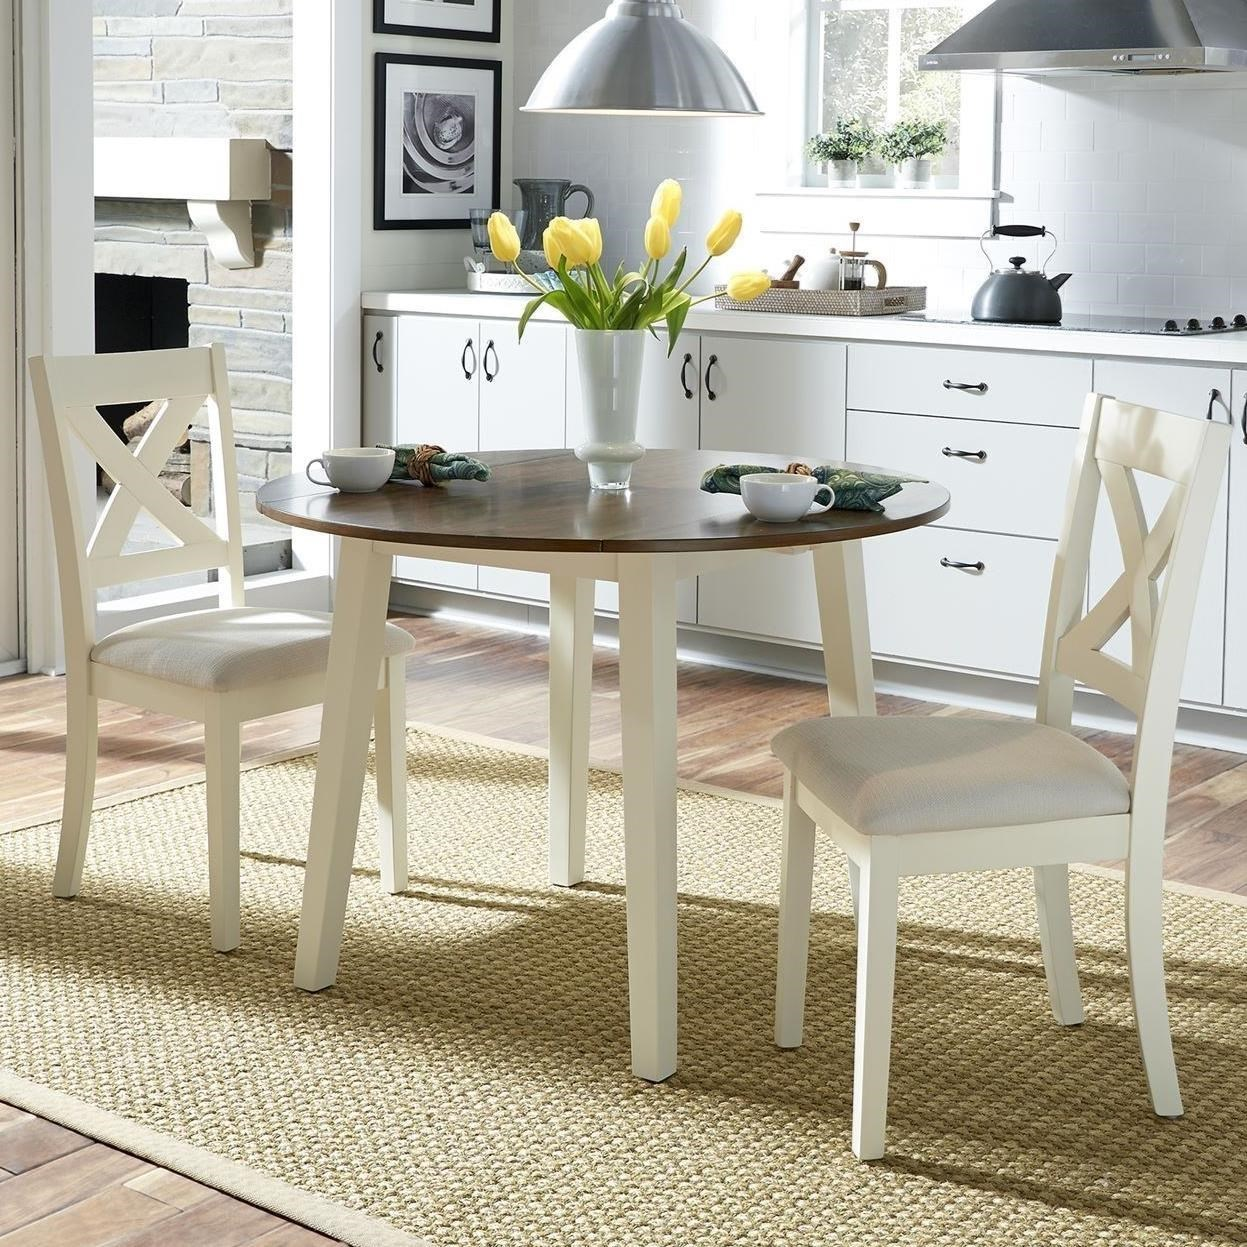 Thornton 3 Piece Drop Leaf Table Set by Liberty Furniture at Standard Furniture